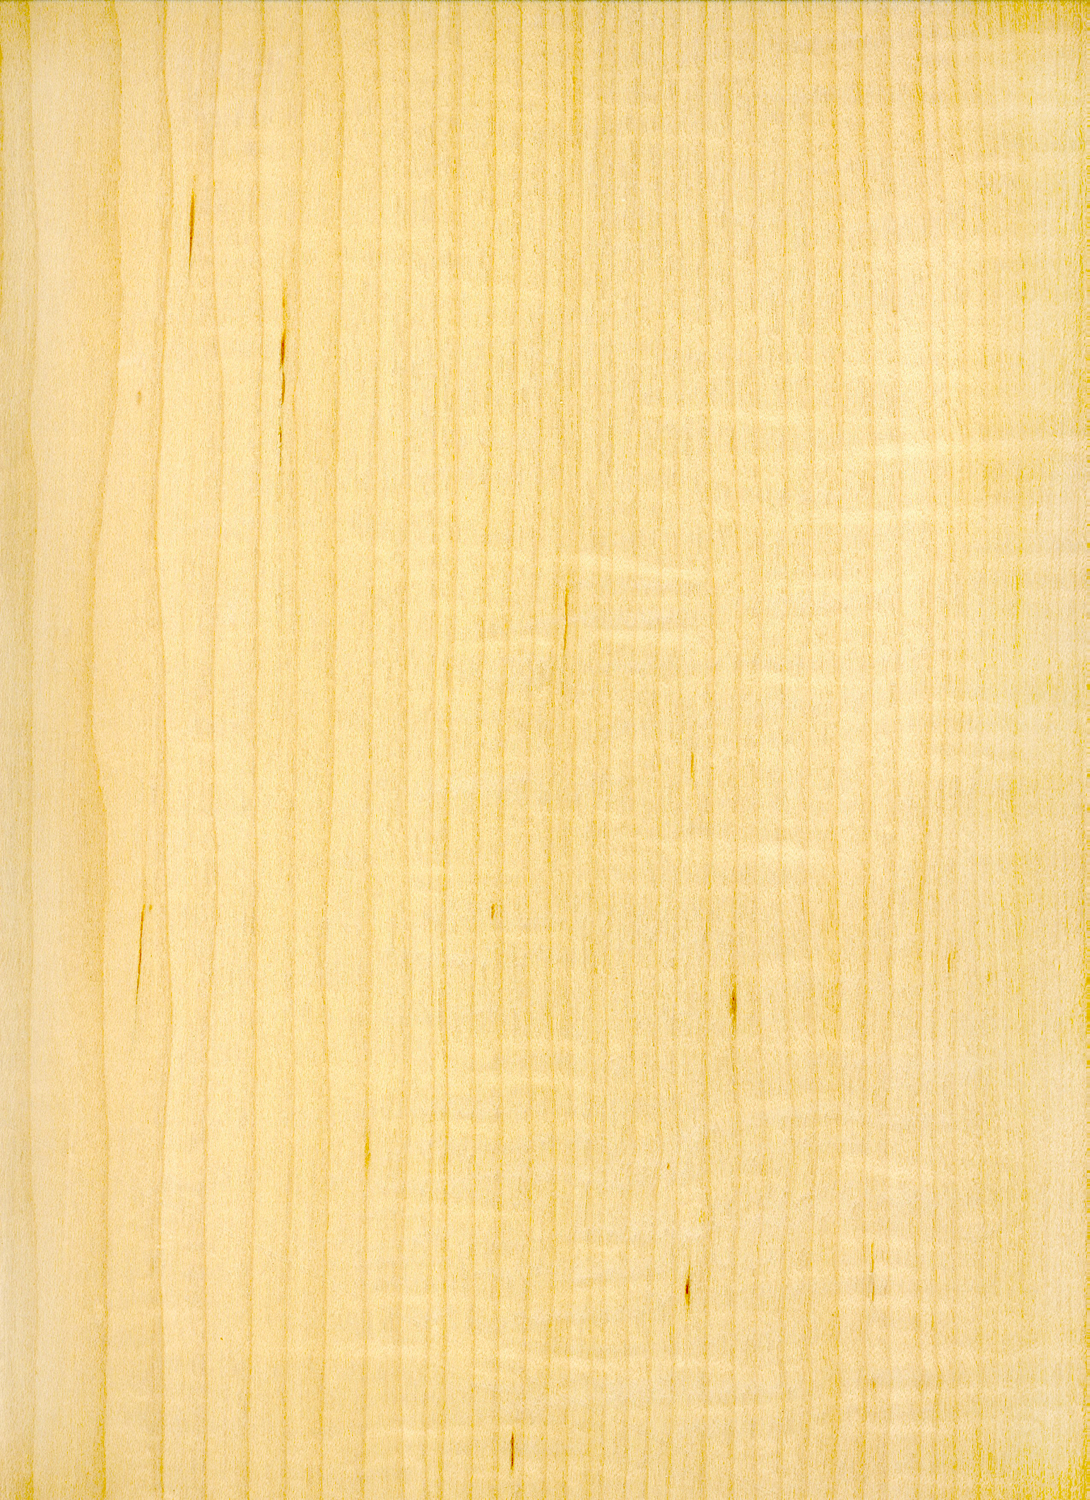 Click here to download maple striped wood grain pattern 1 947 kb